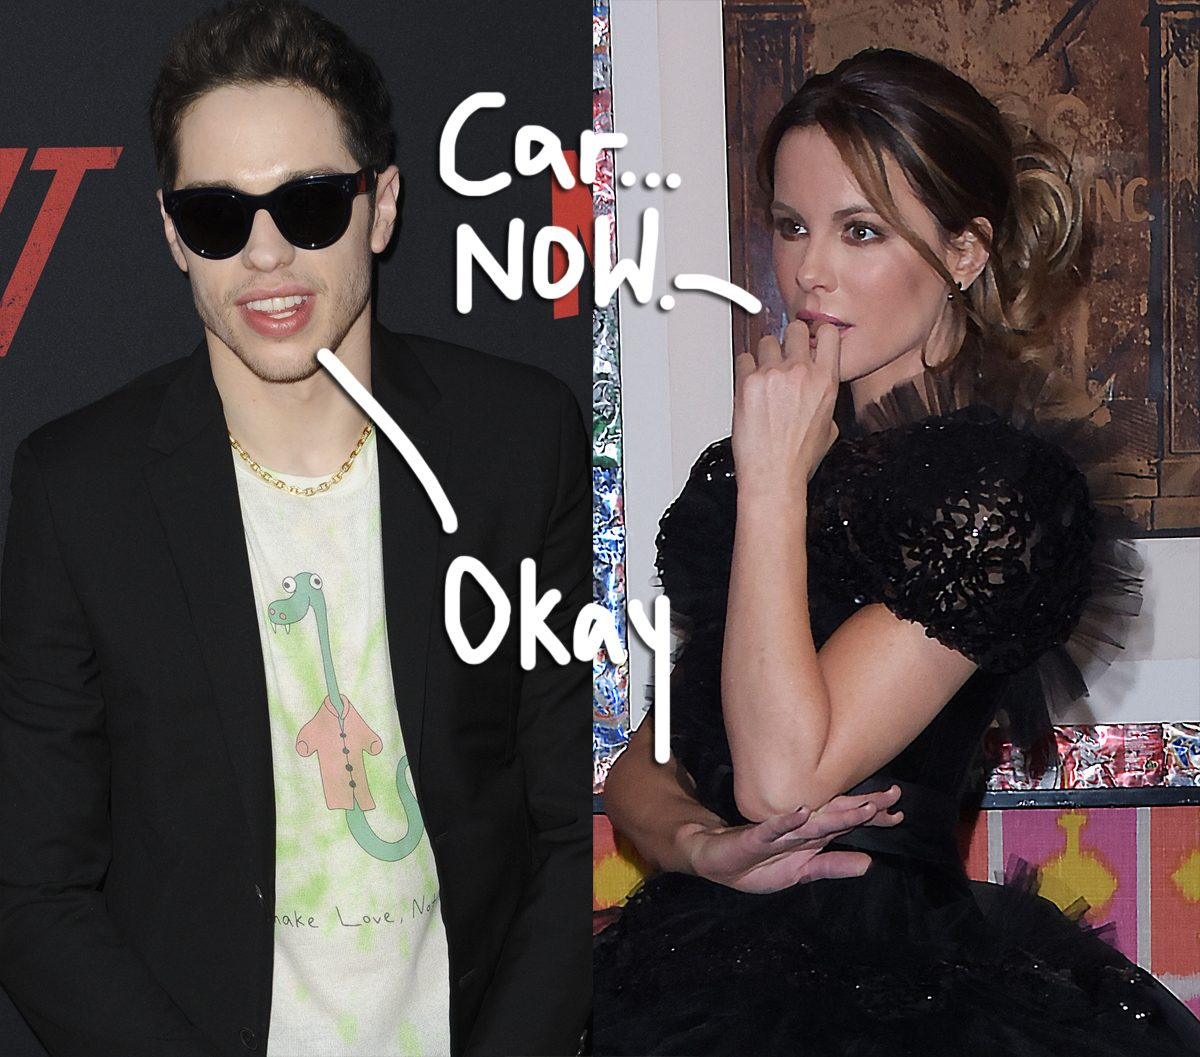 Pete Davidson & Kate Beckinsale Spotted Making Out After Film Premiere: 'They Didn't Care Who